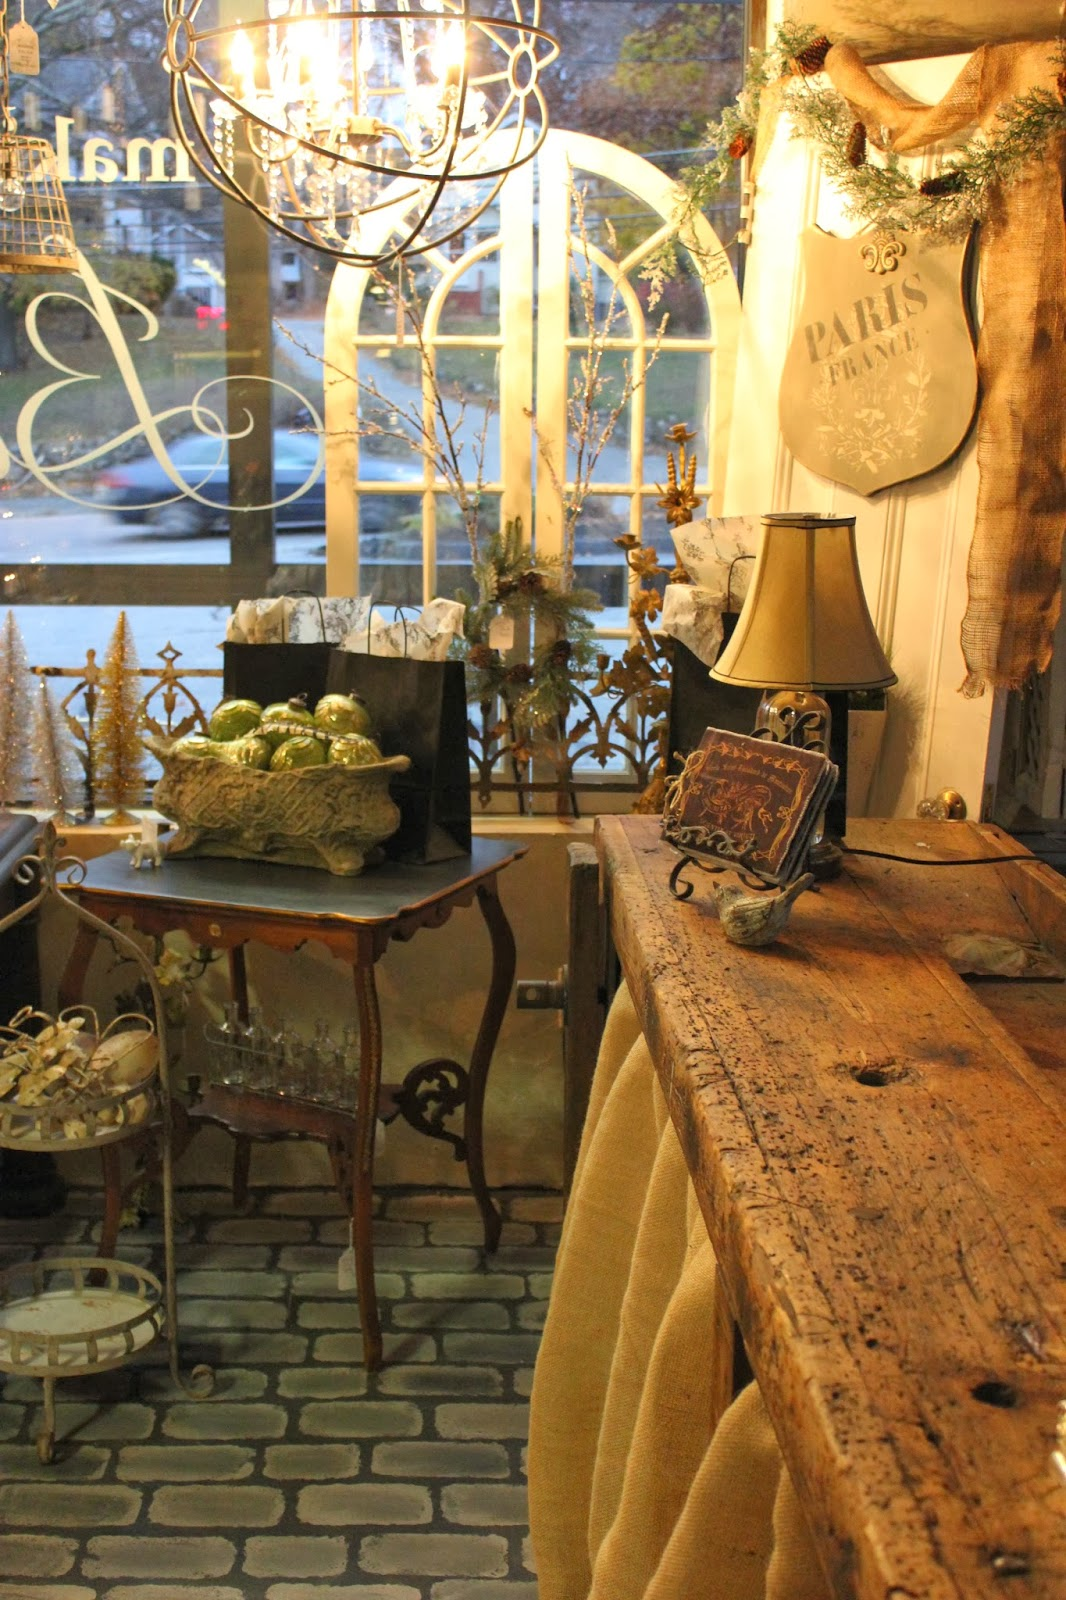 My Home Decor Guide: Maison Decor: Rustic French Home Accents In The Shop